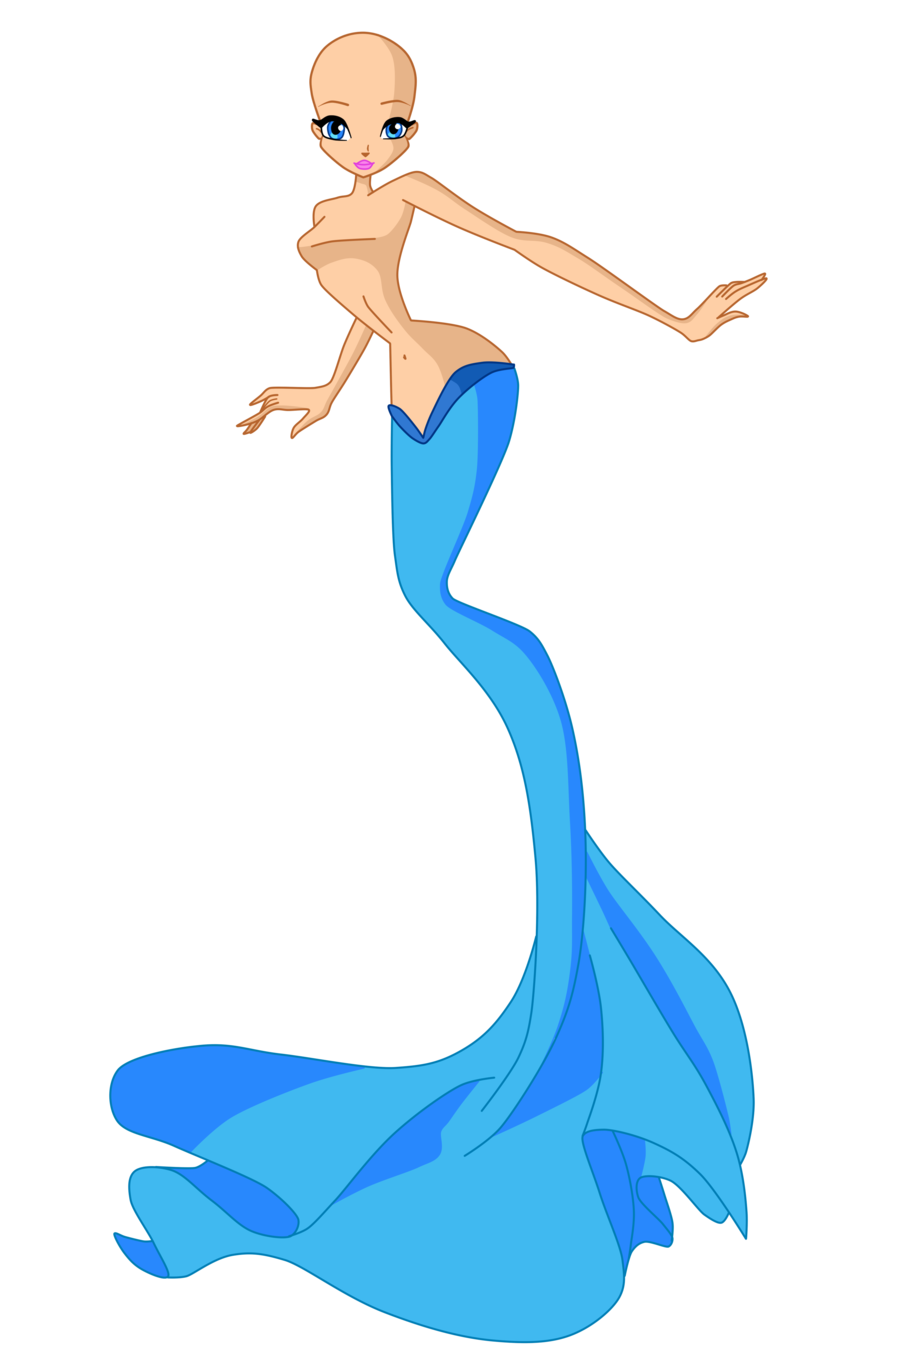 Winx the base by. Transformation drawing mermaid banner transparent stock